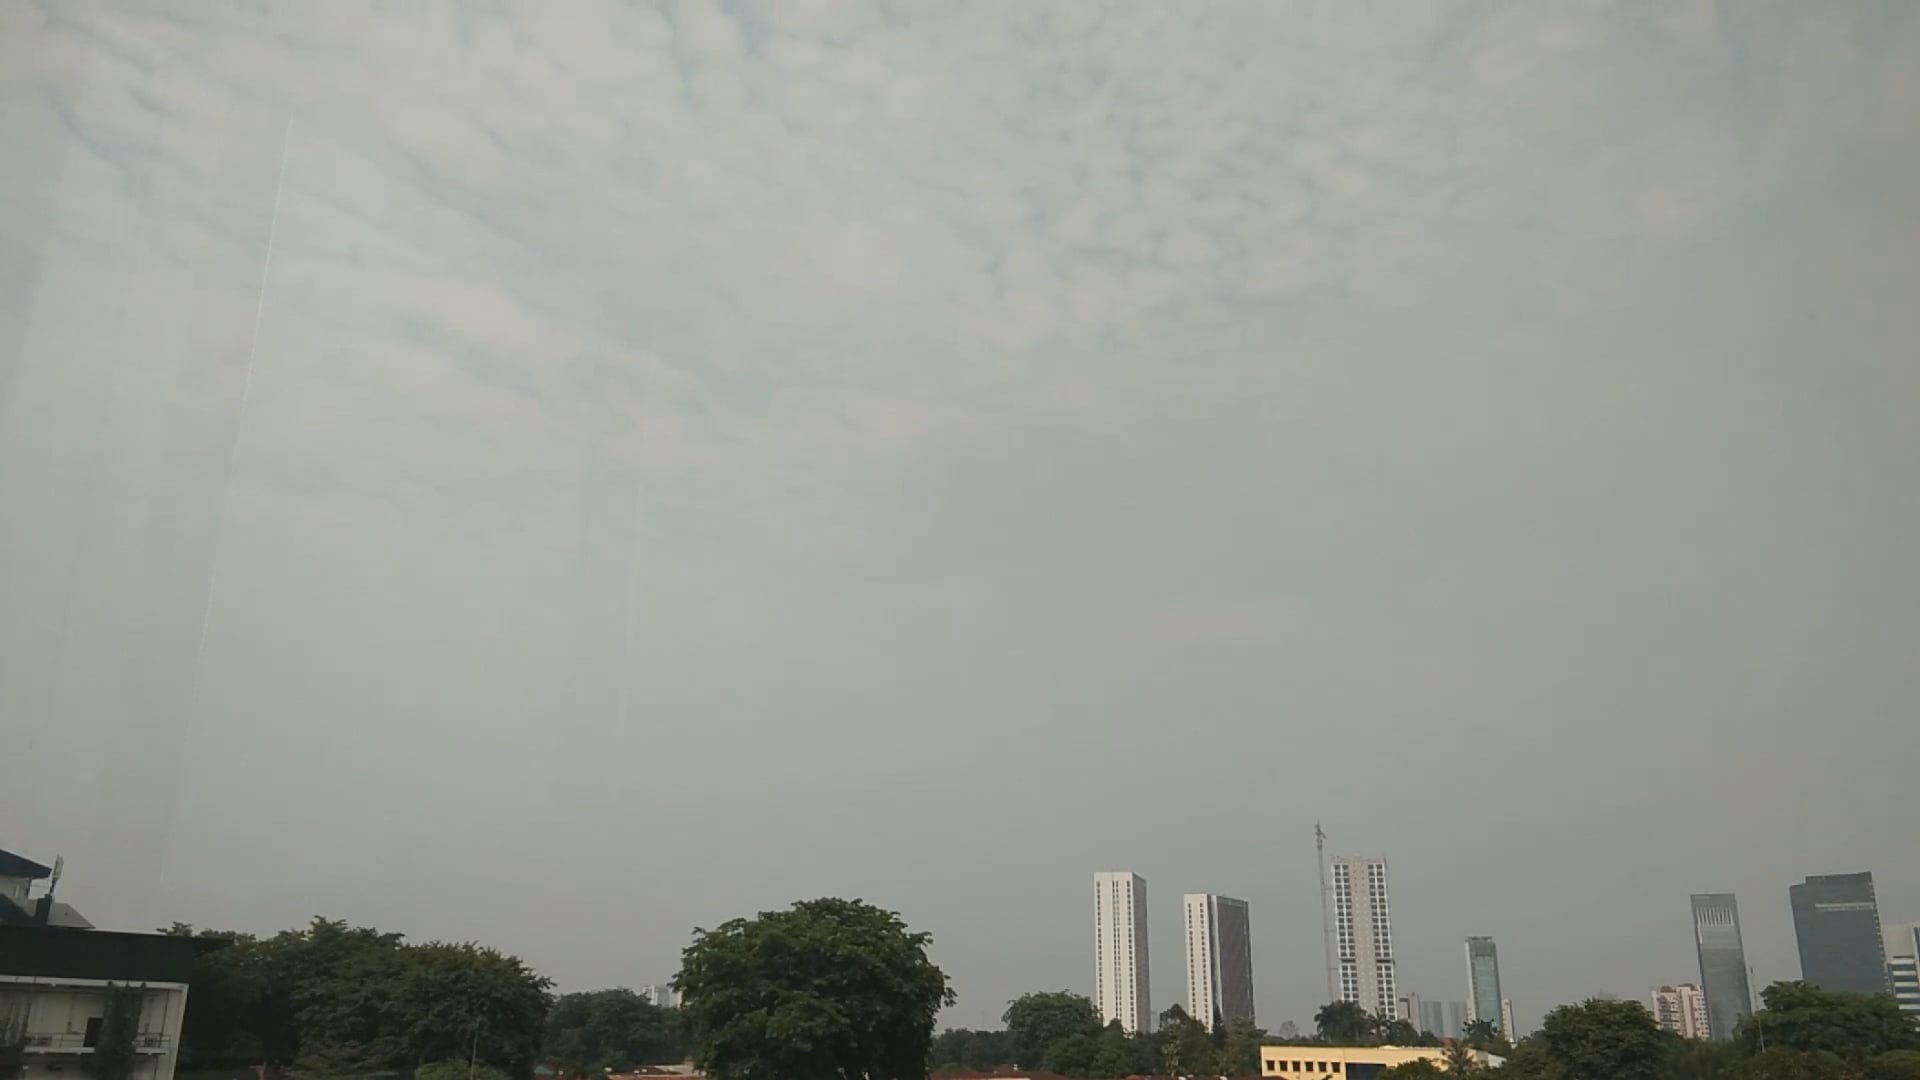 Movement Of Clouds In The Sky